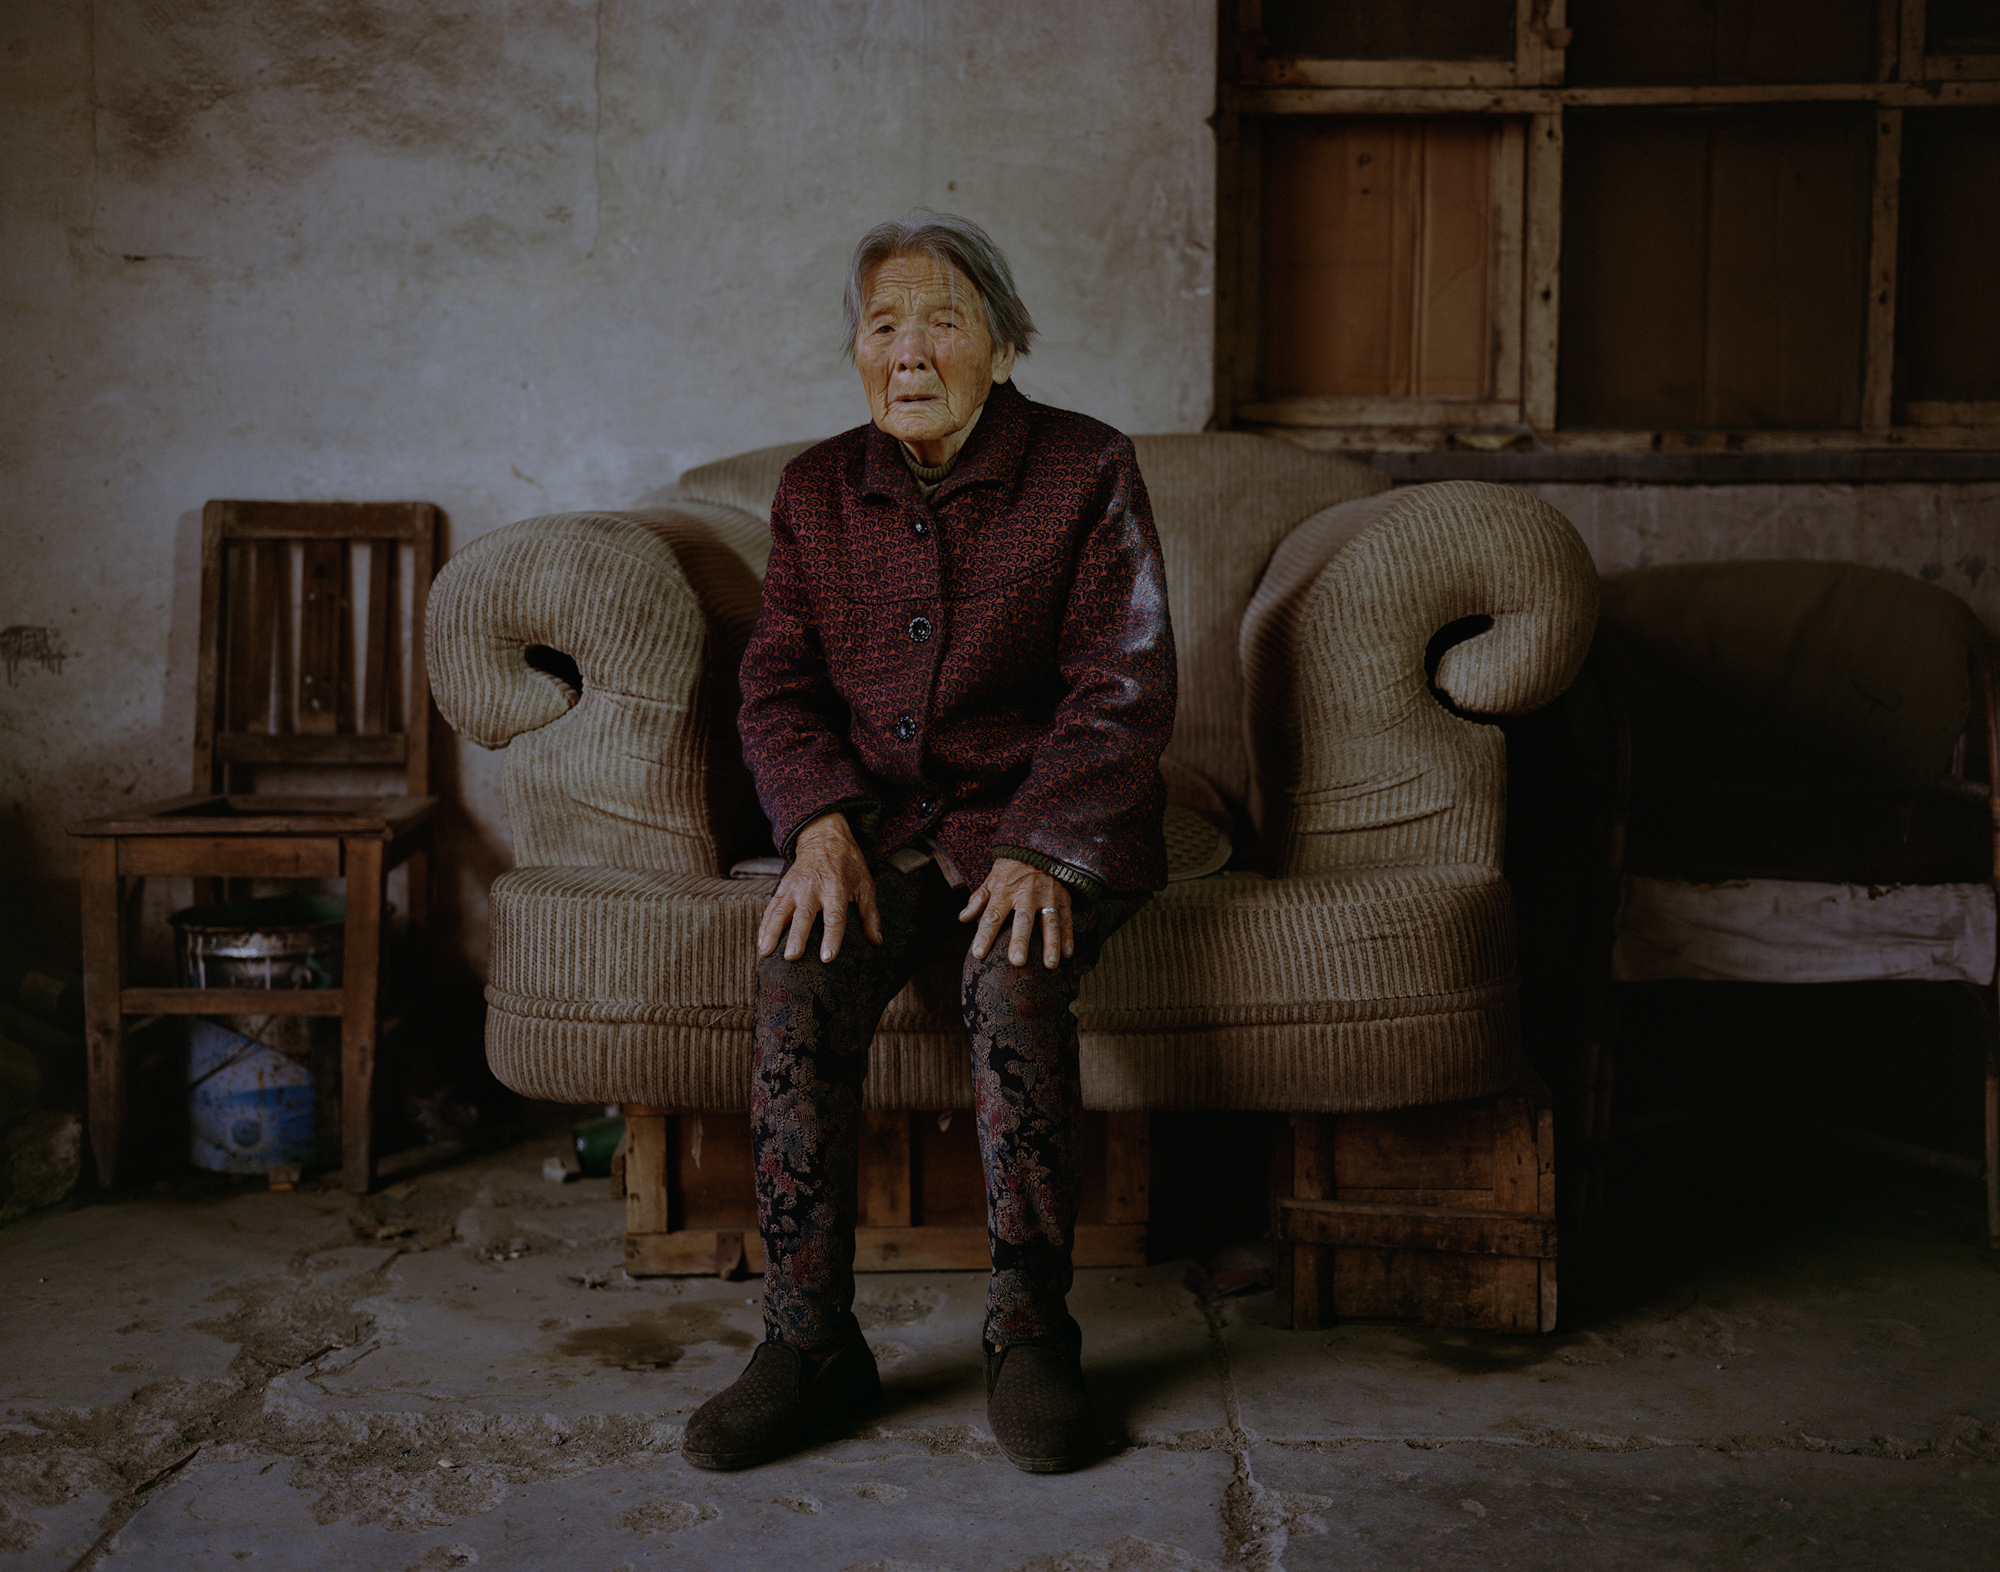 Ma Yulan, 82, sits in the hallway of her apartment building in Xiahuayuan. Ma moved here with her son 30 years ago when he found a job at a coal mine. During the local coal industry's peak, 89 mines were operational. Now there are fewer than 10.